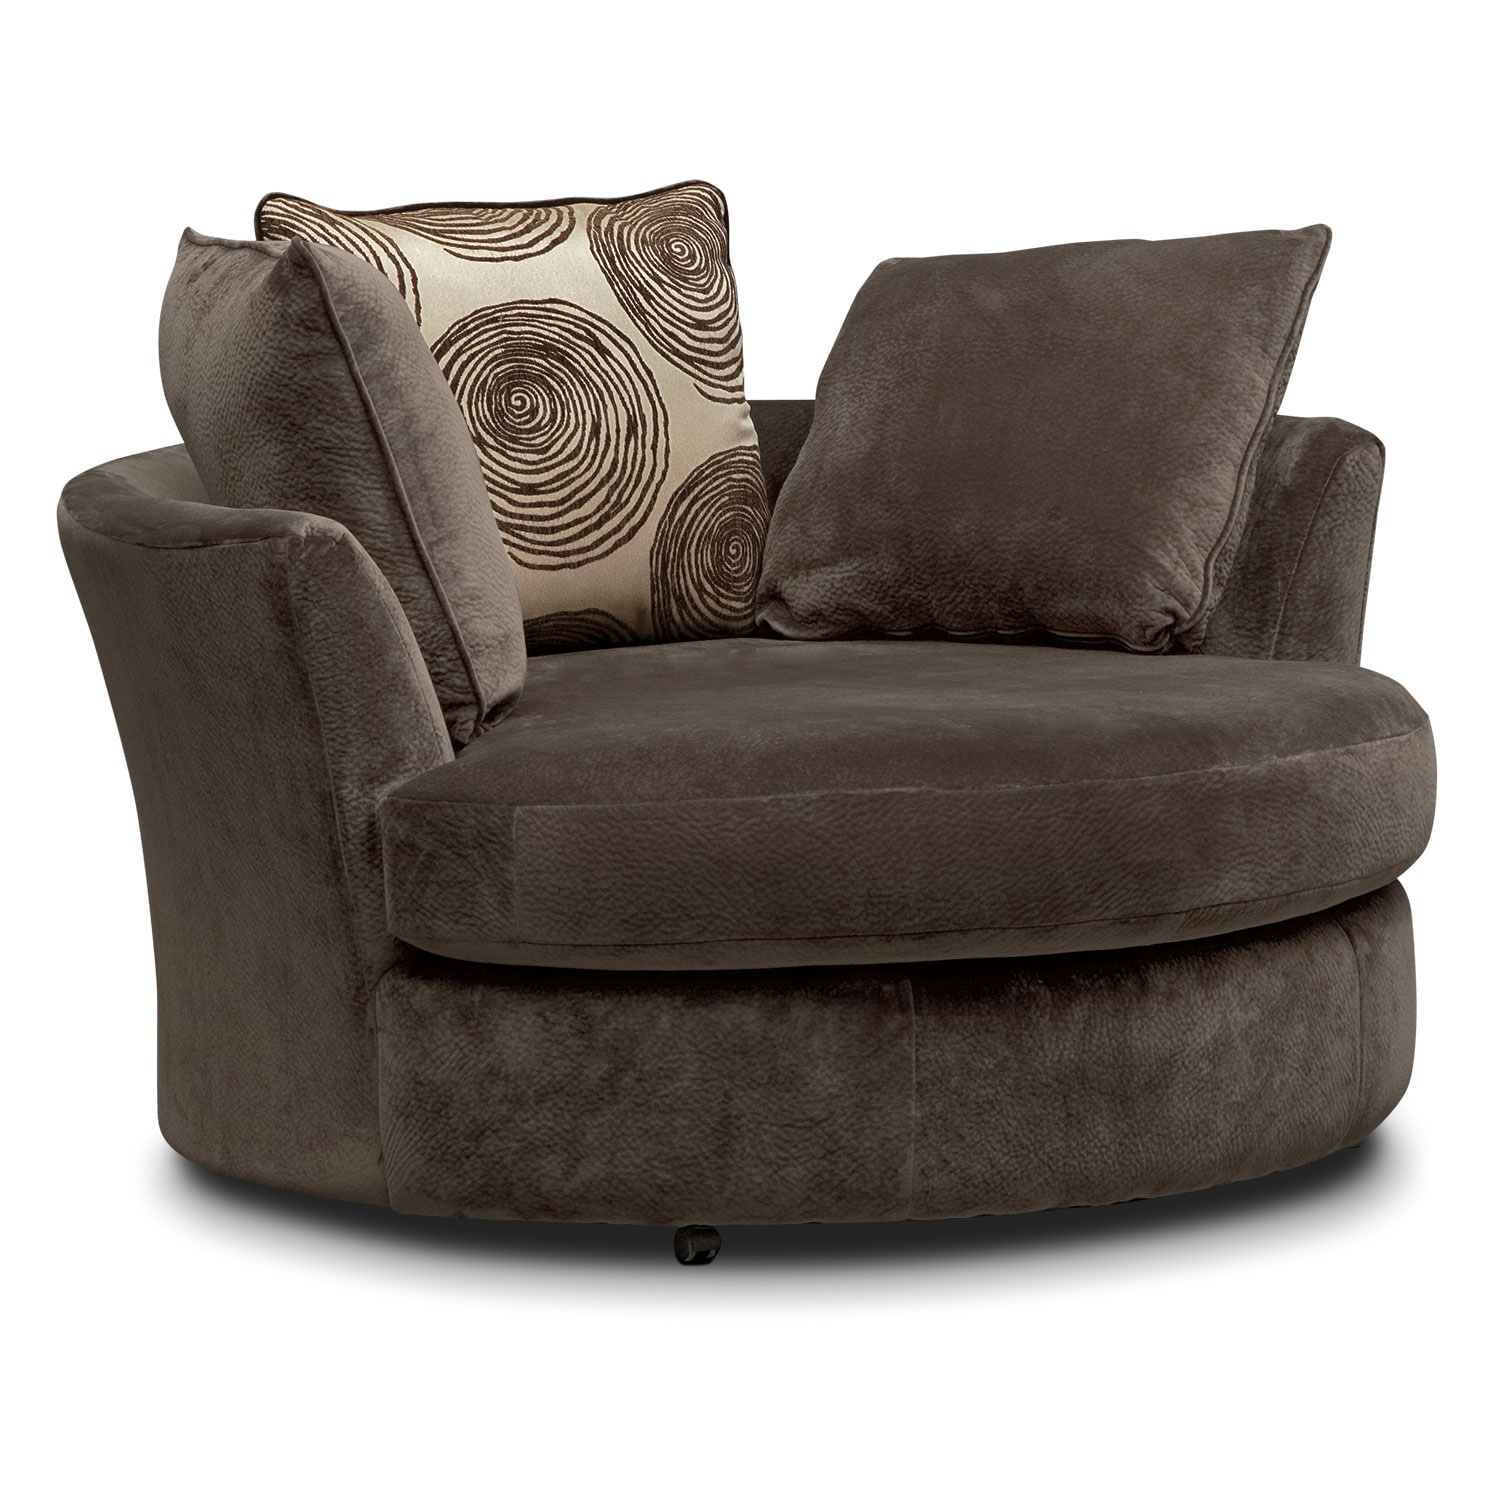 Cordelle Swivel Chair  Value City Furniture and Mattresses